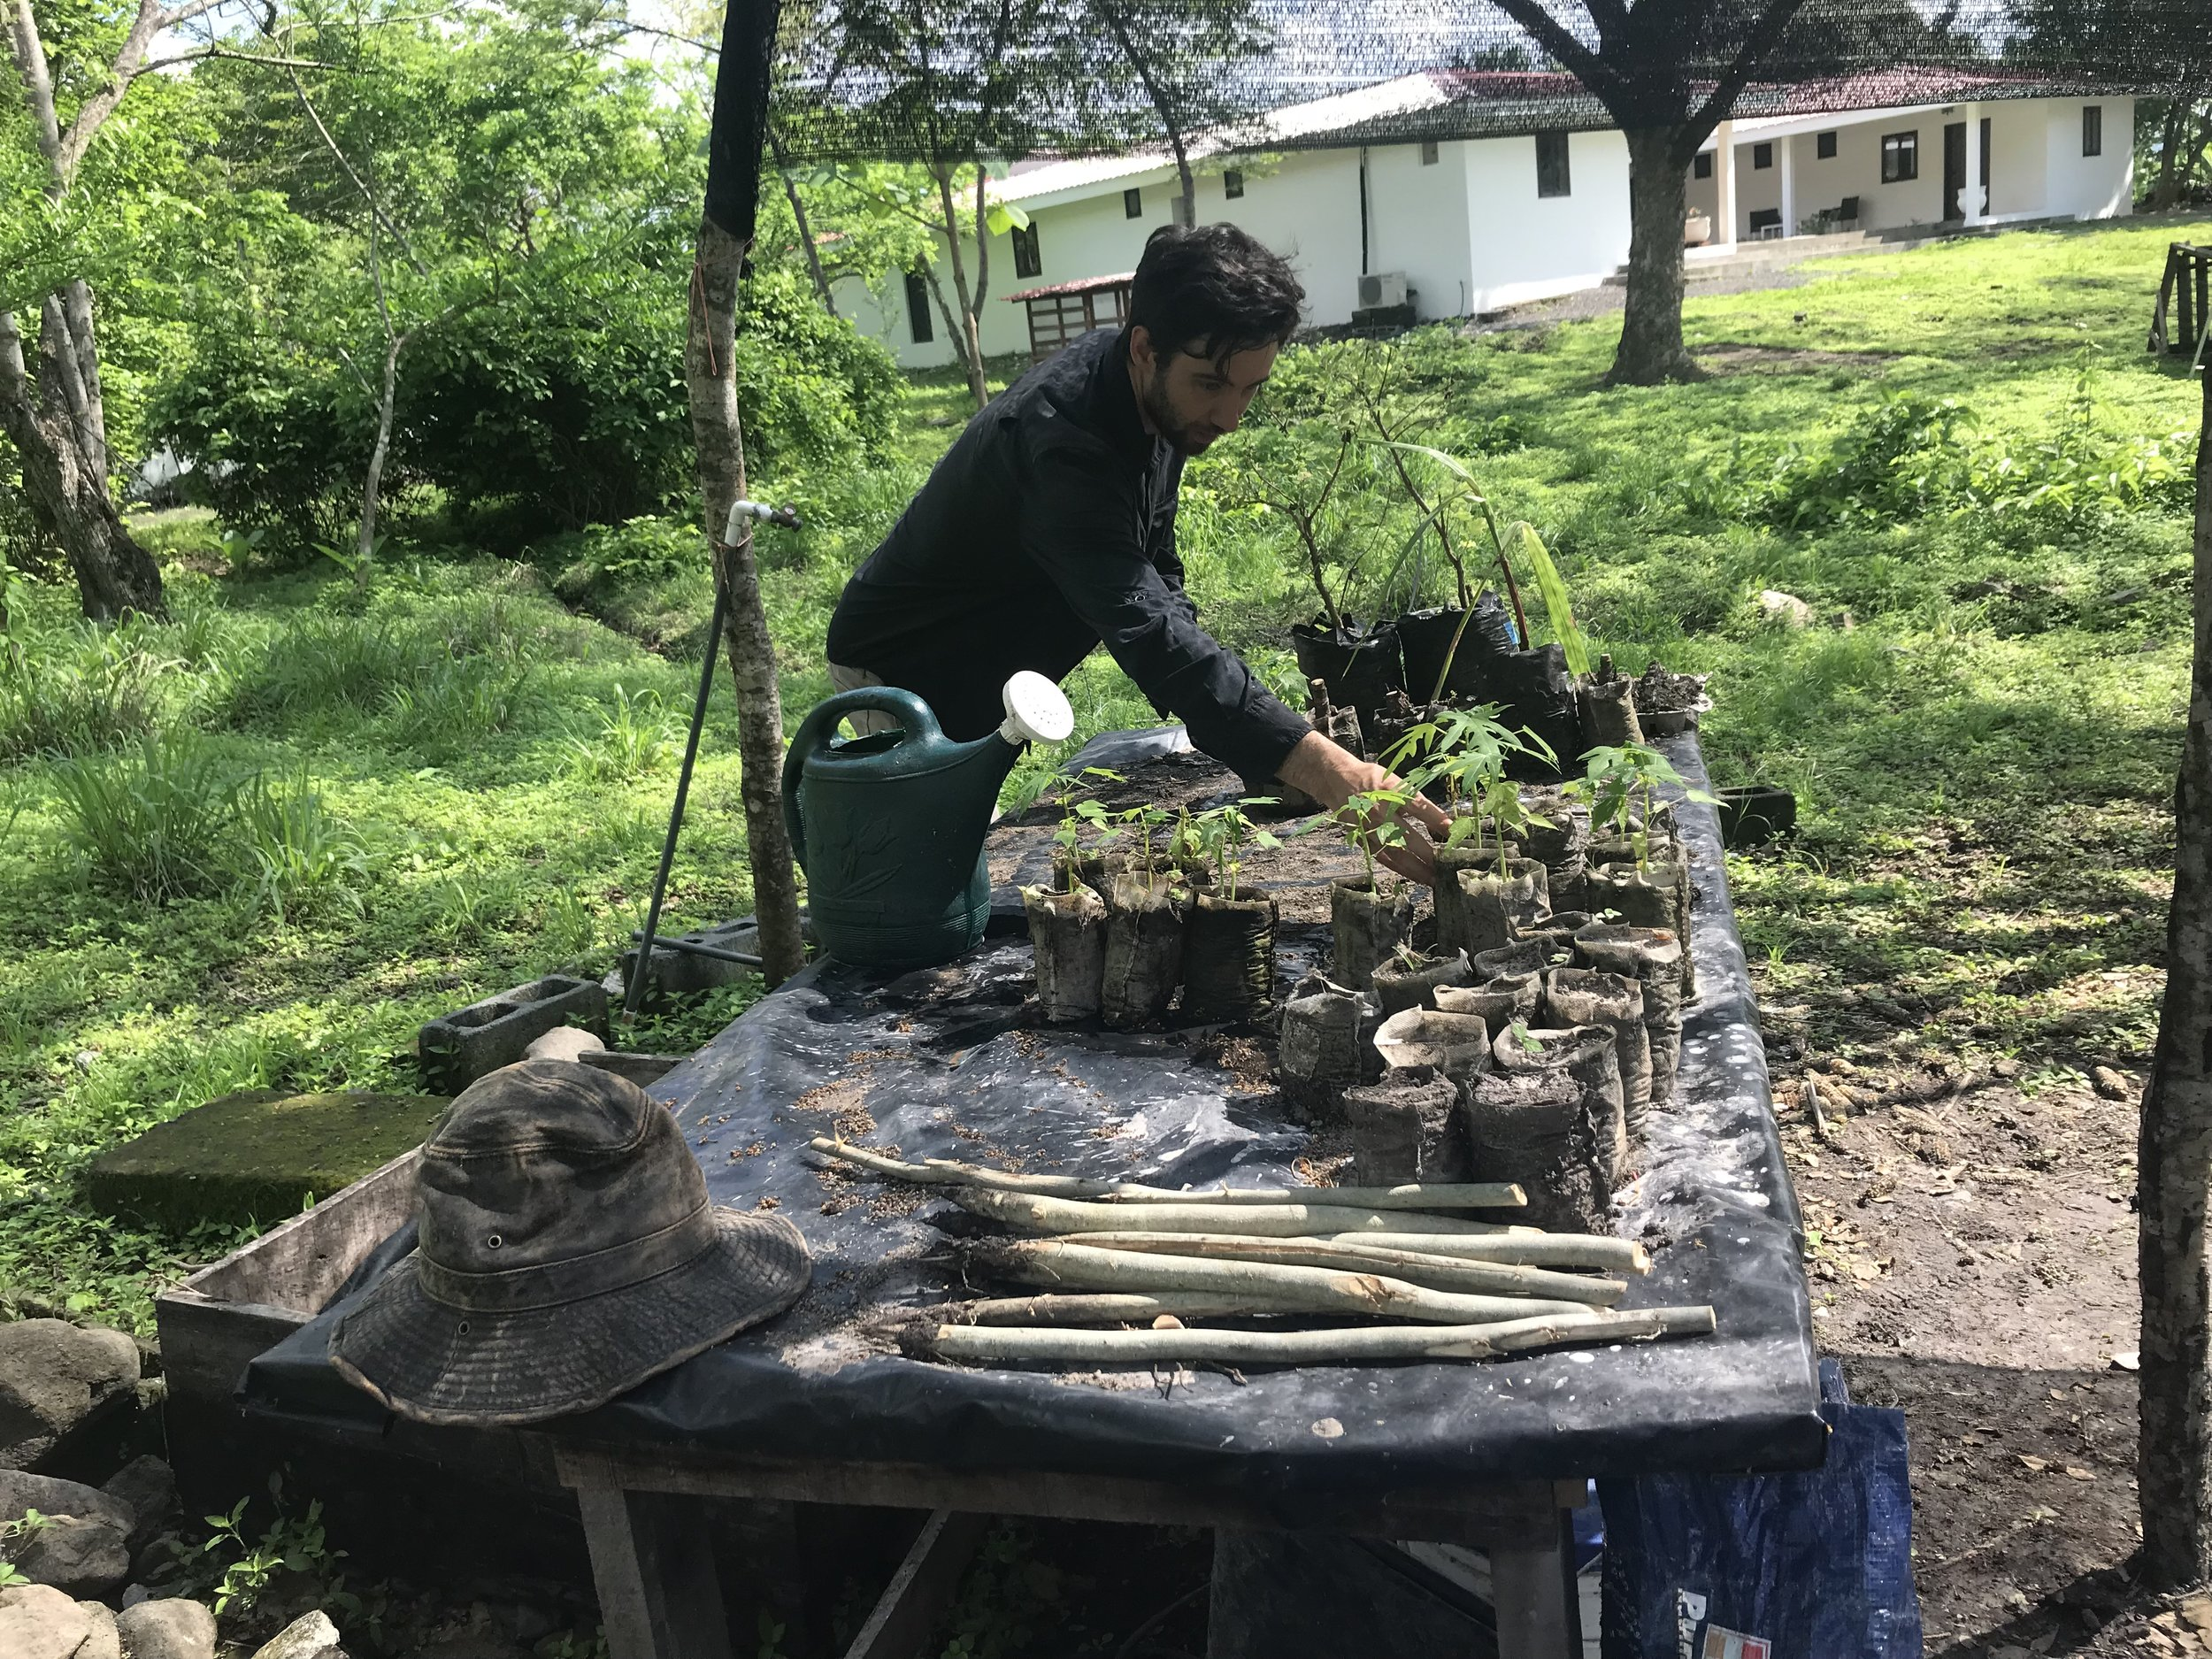 Project co-founder Tom working in the farm's nursery